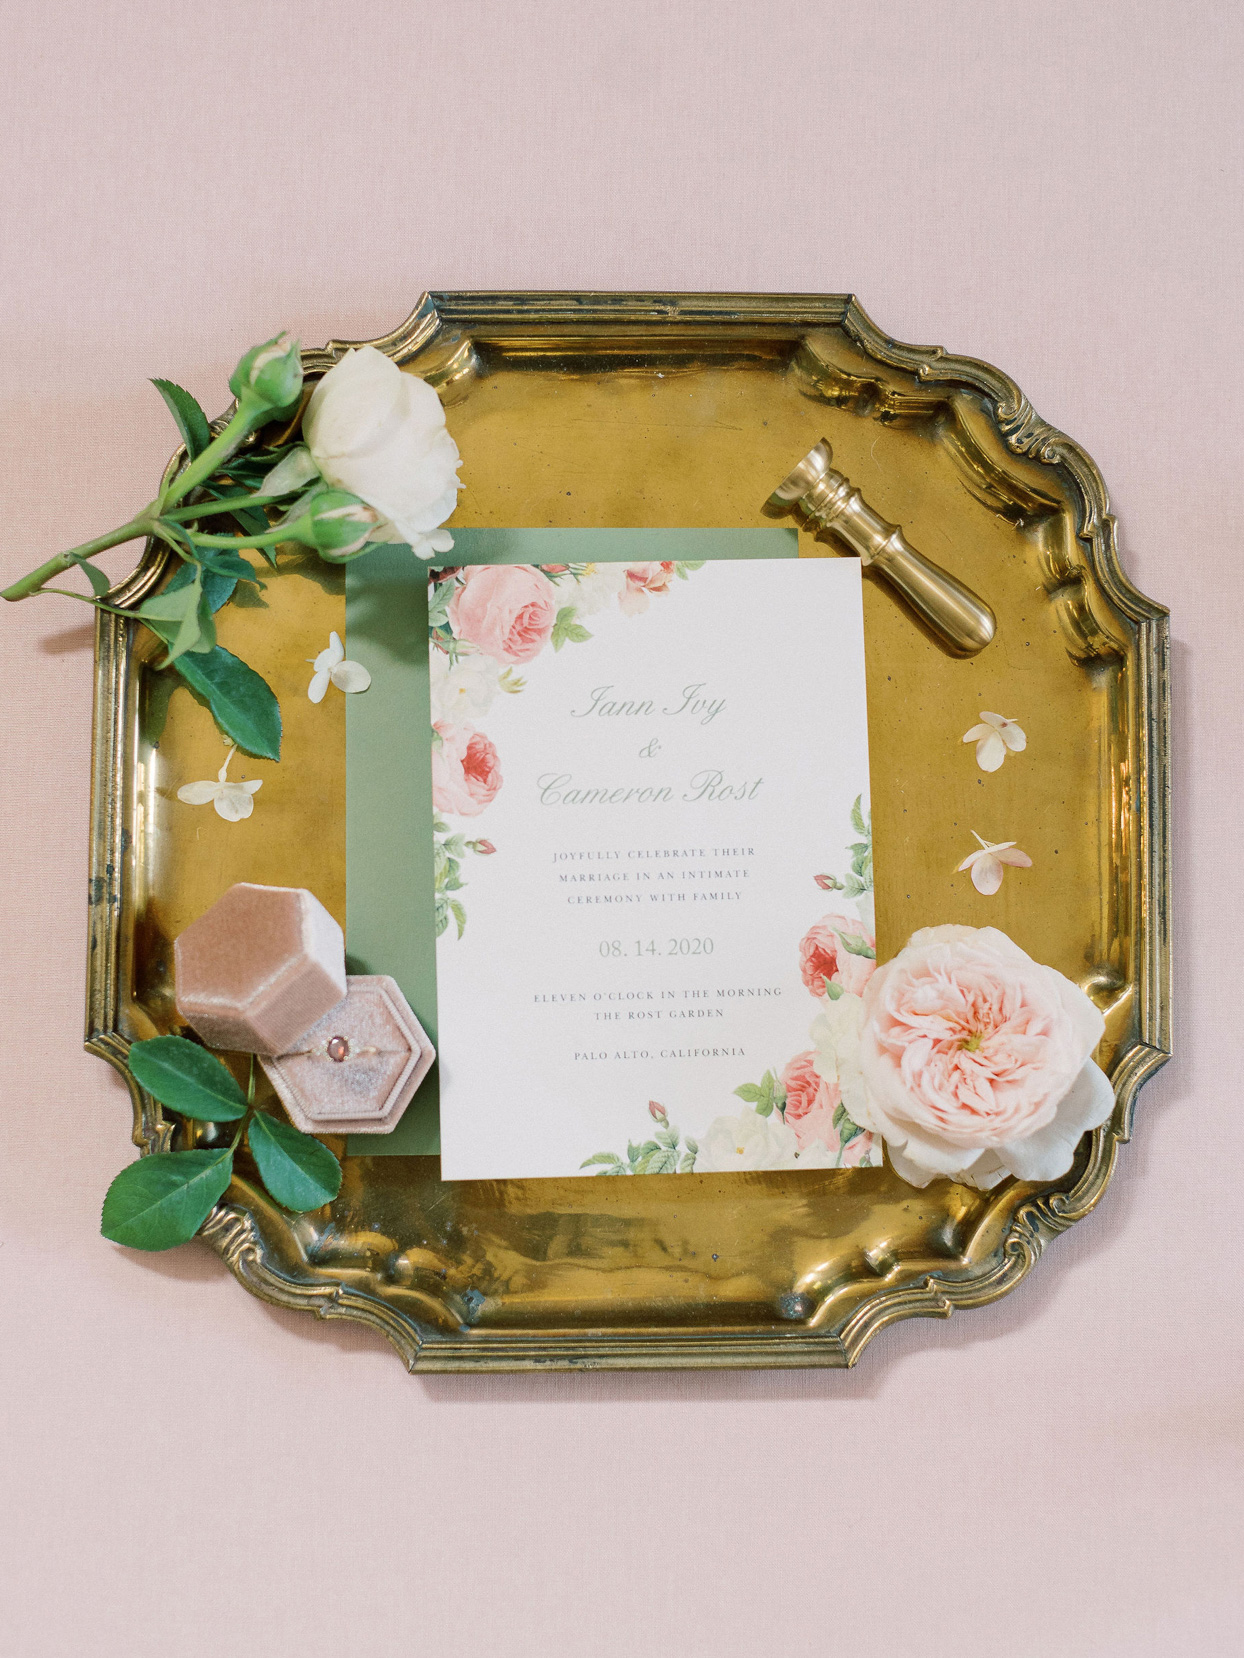 pink and white wedding invitations on gold tray